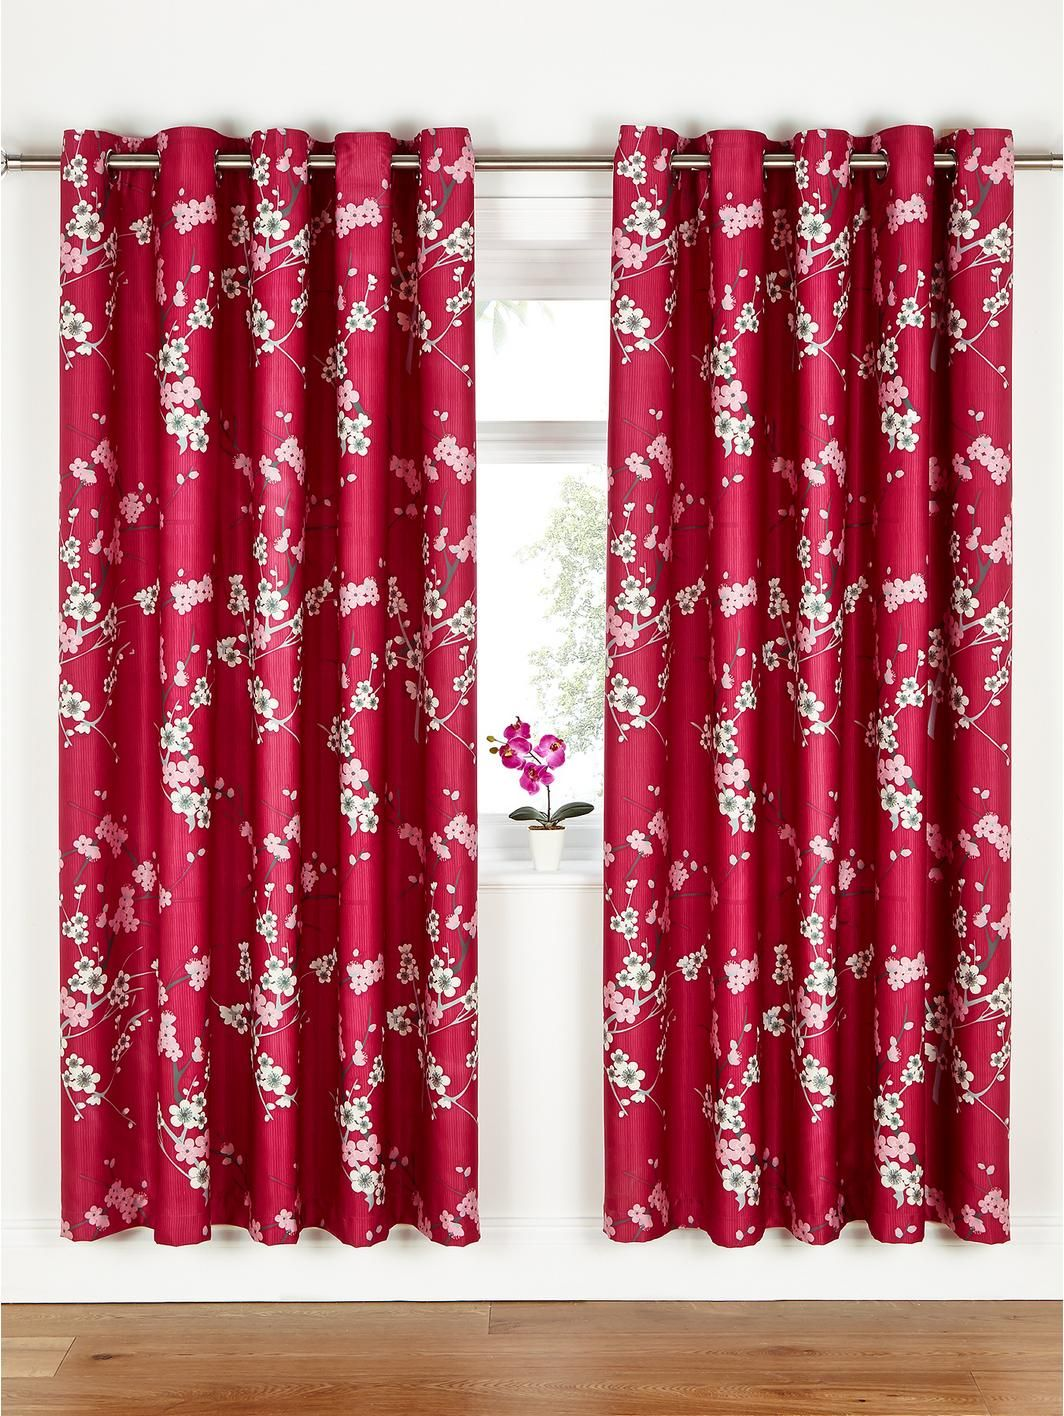 Cherry Blossom Eyelet Curtains, http://www.littlewoods.com/fearne ...